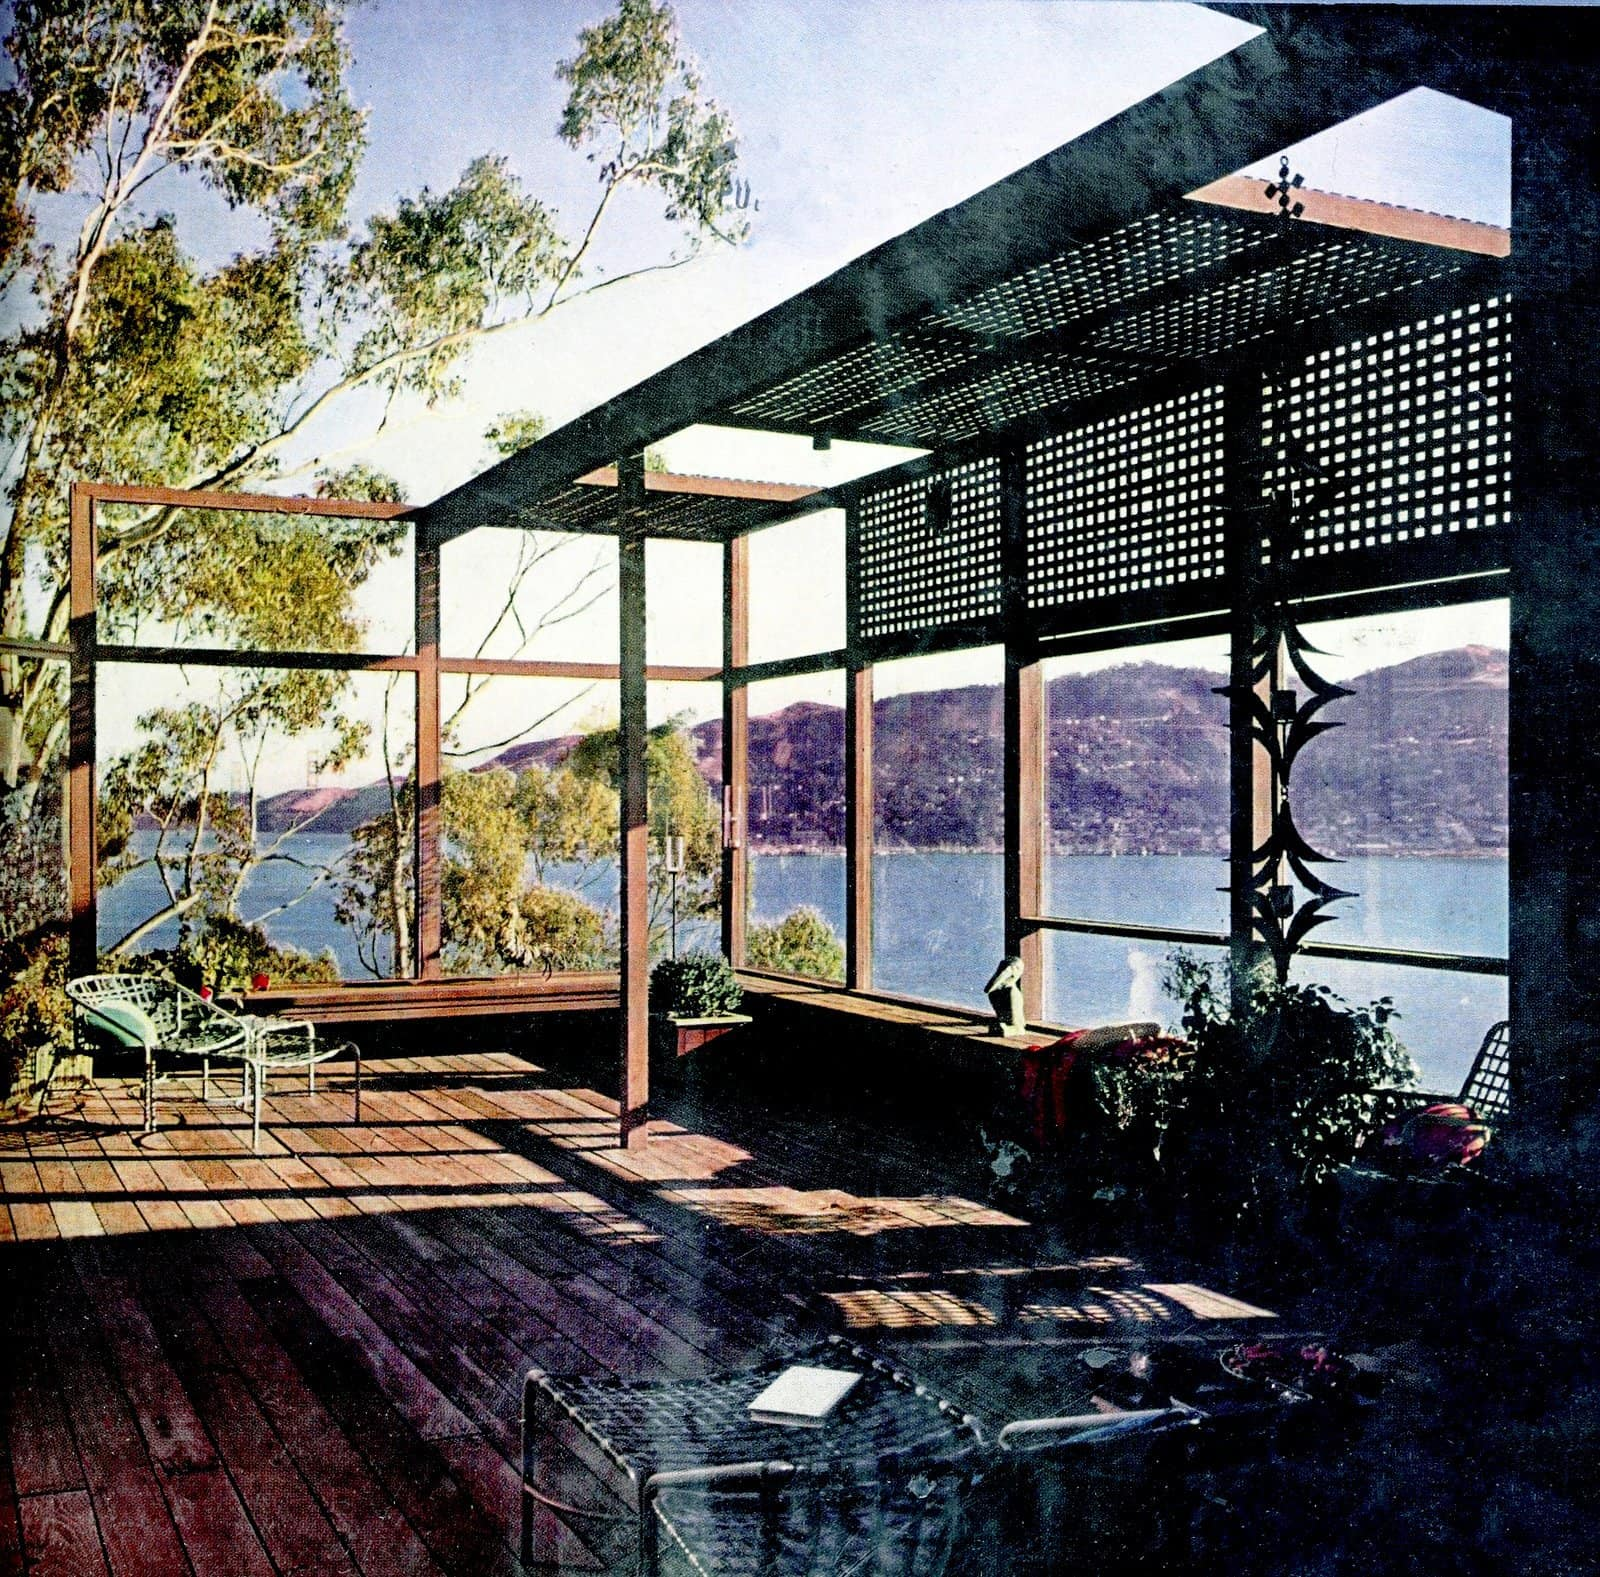 Redwood deck with trellis and windows to a beautiful water view (1962)